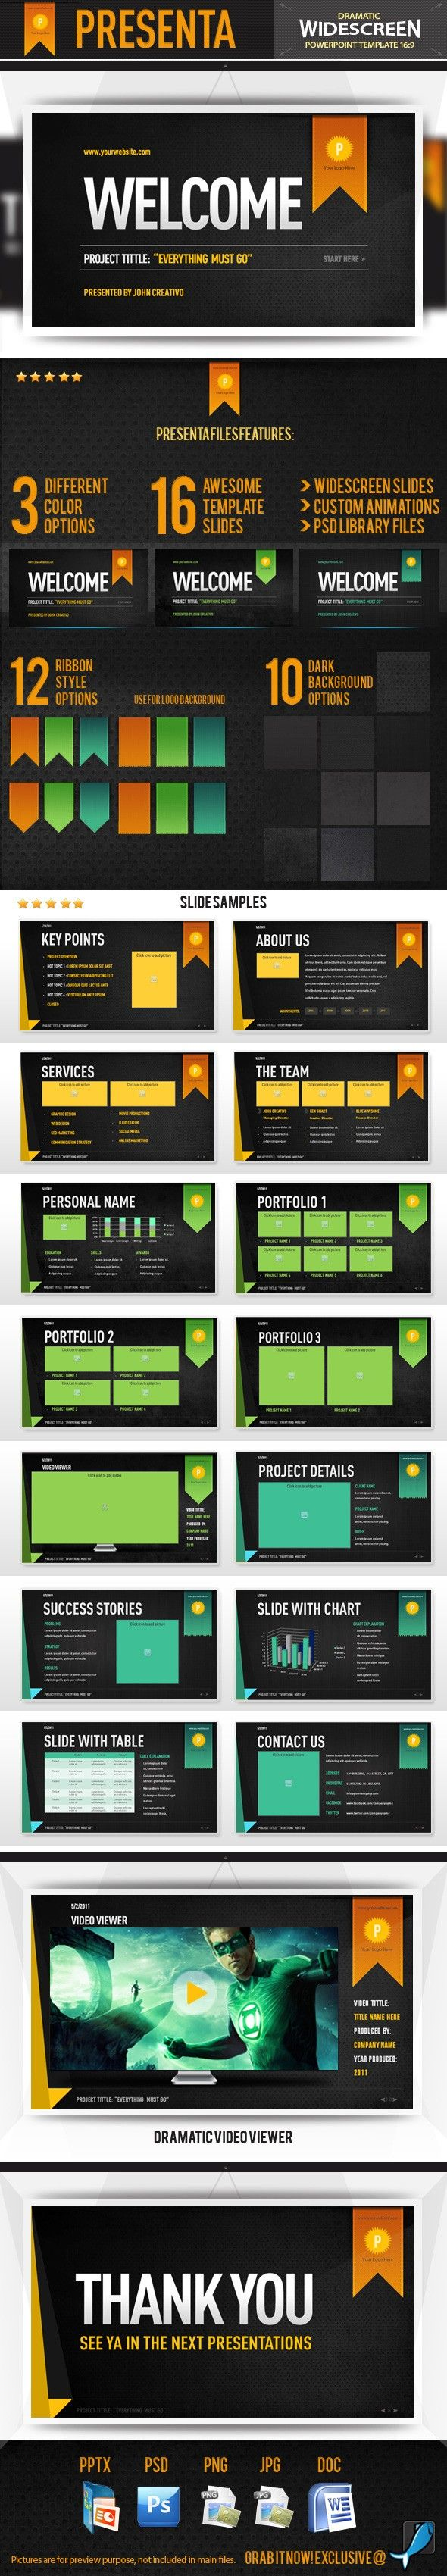 Presenta powerpoint template template and contemporary art toneelgroepblik Image collections